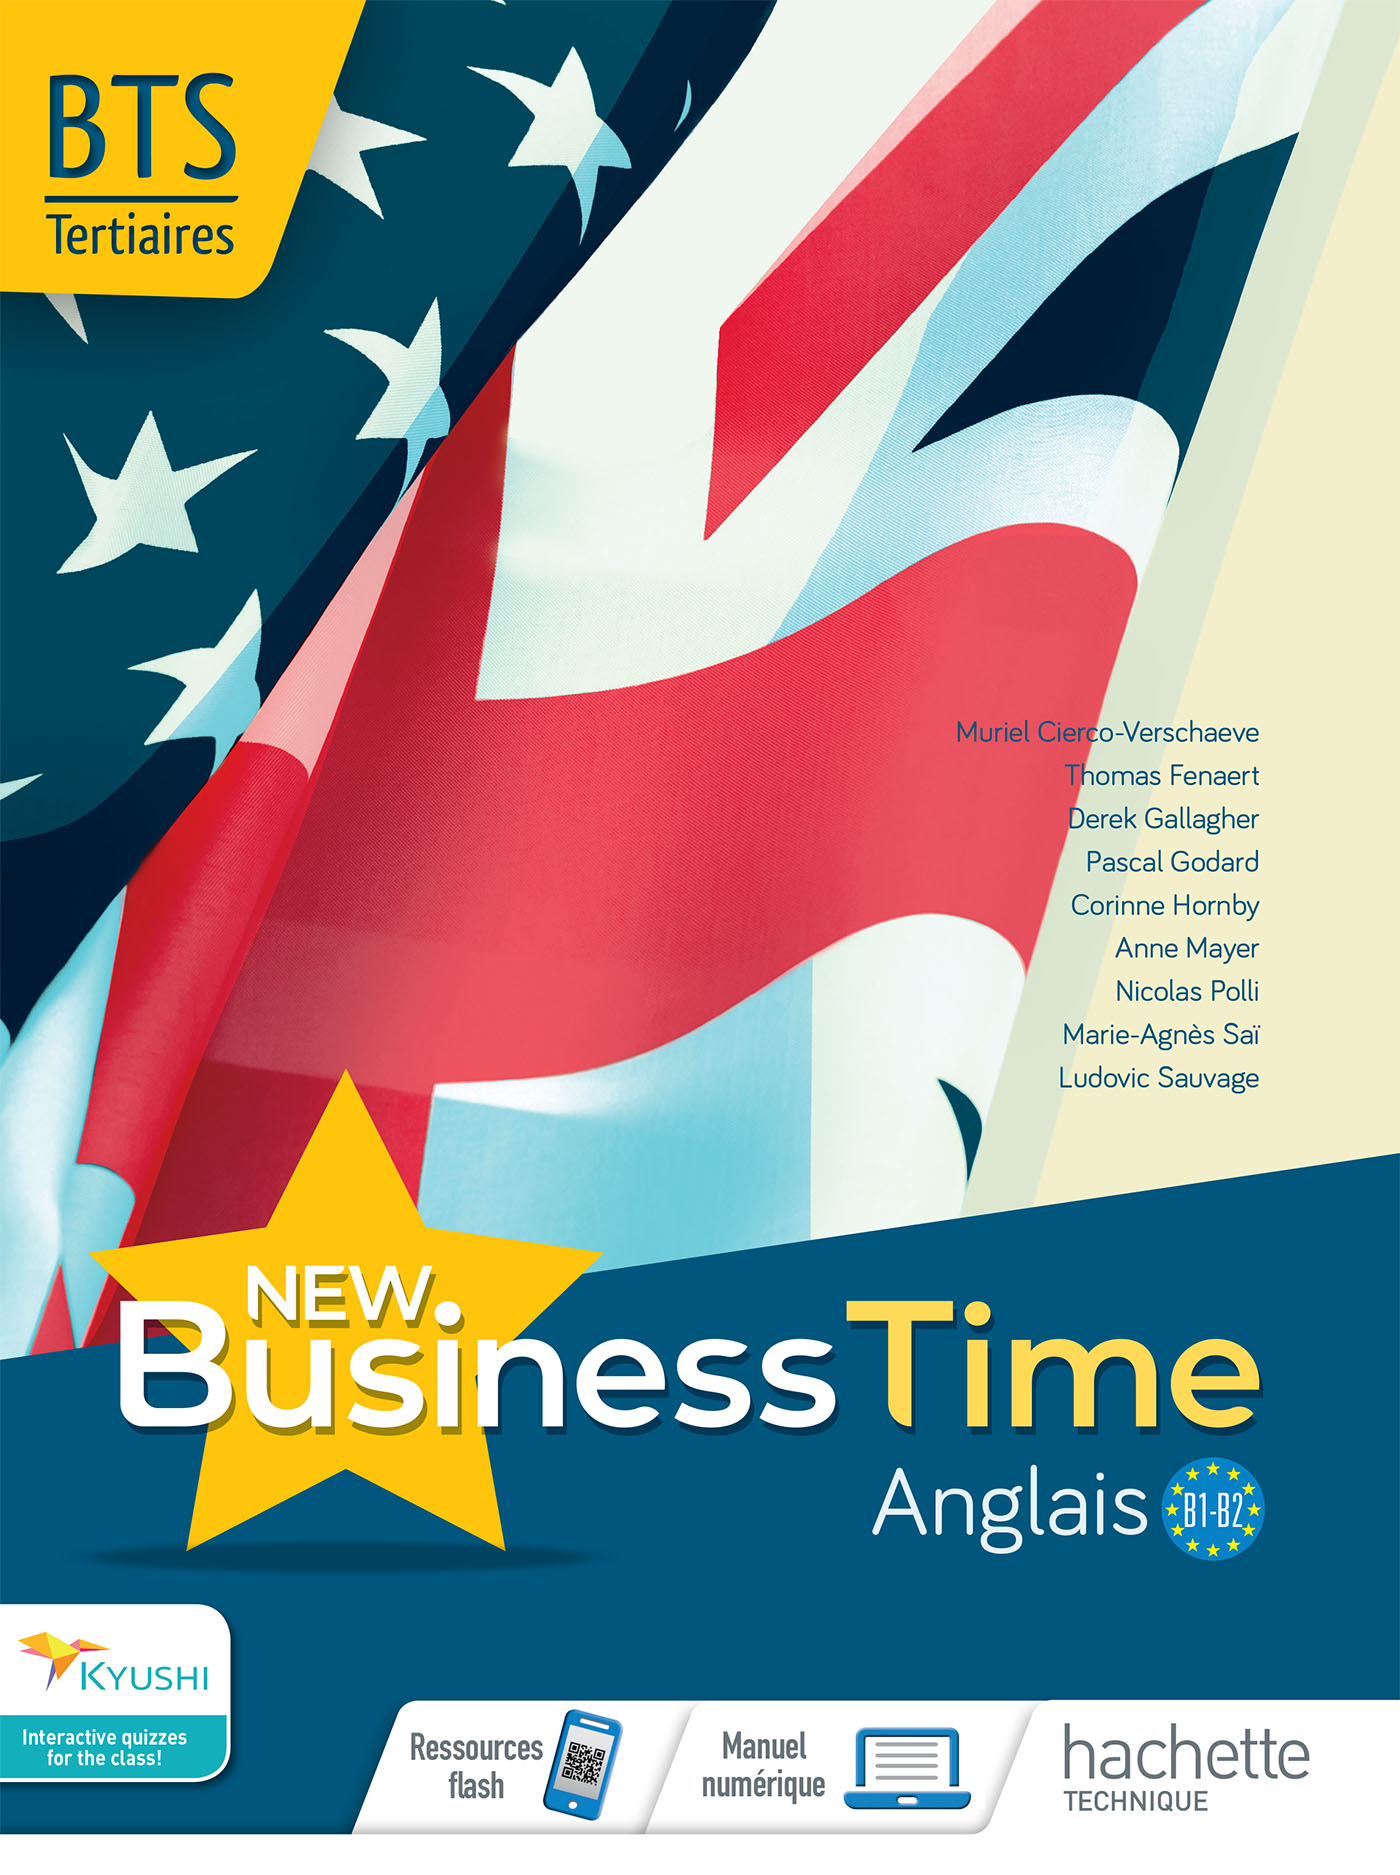 BTS - New Business Time Anglais